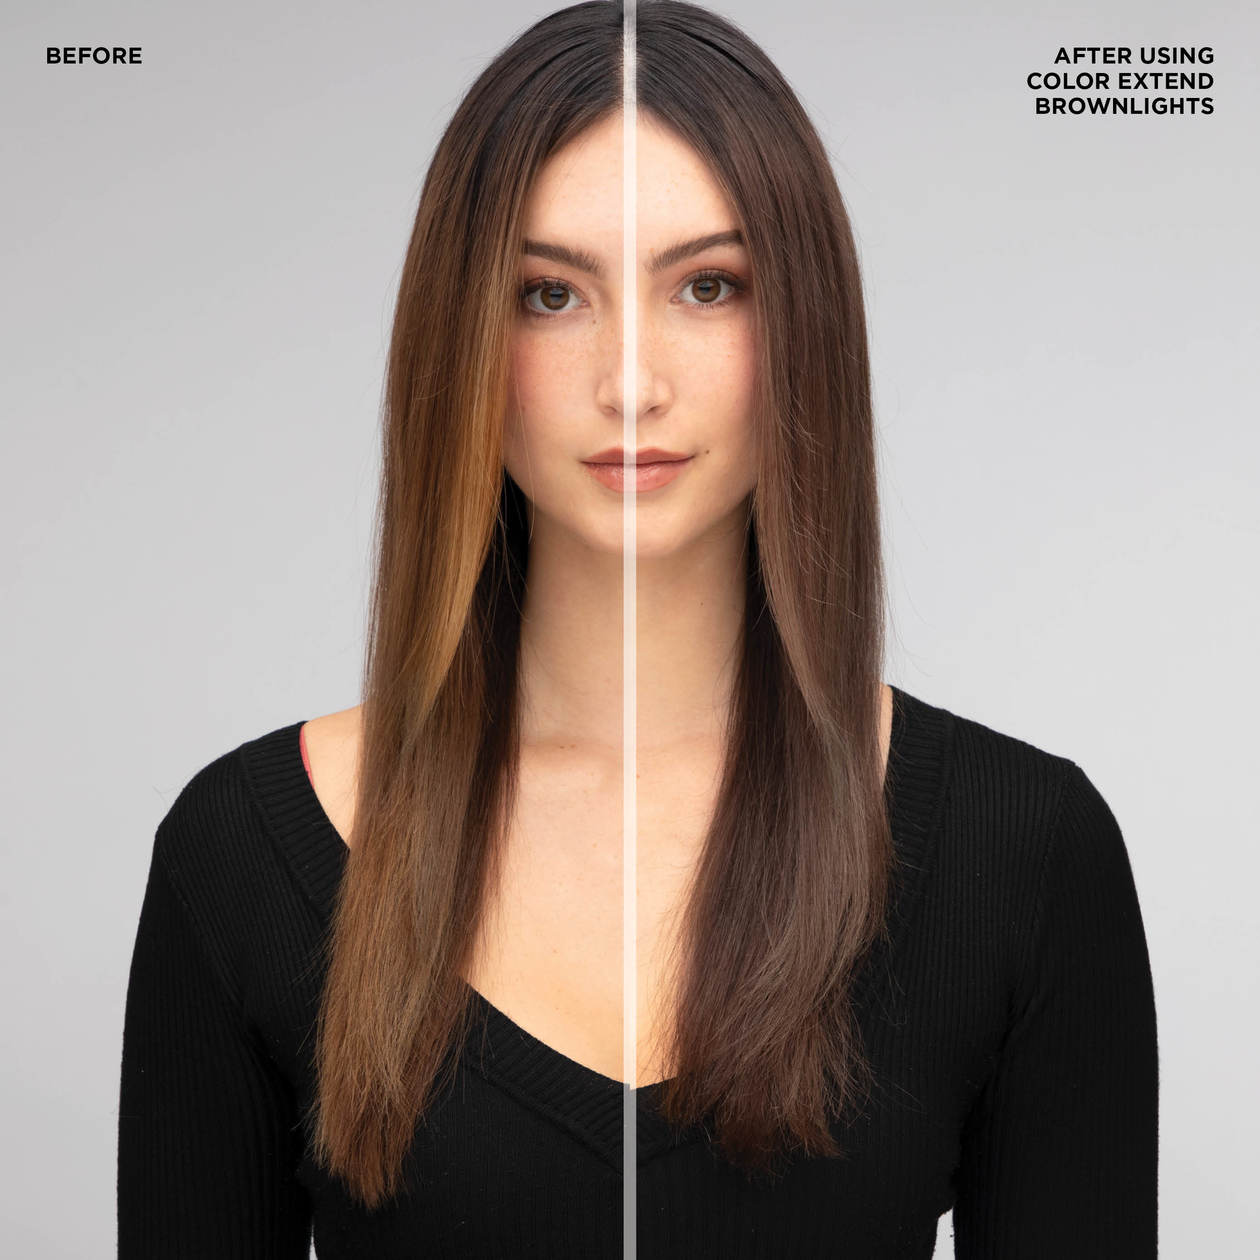 Redken-2019-Color-Extend-Brownlights-Social-Post-31